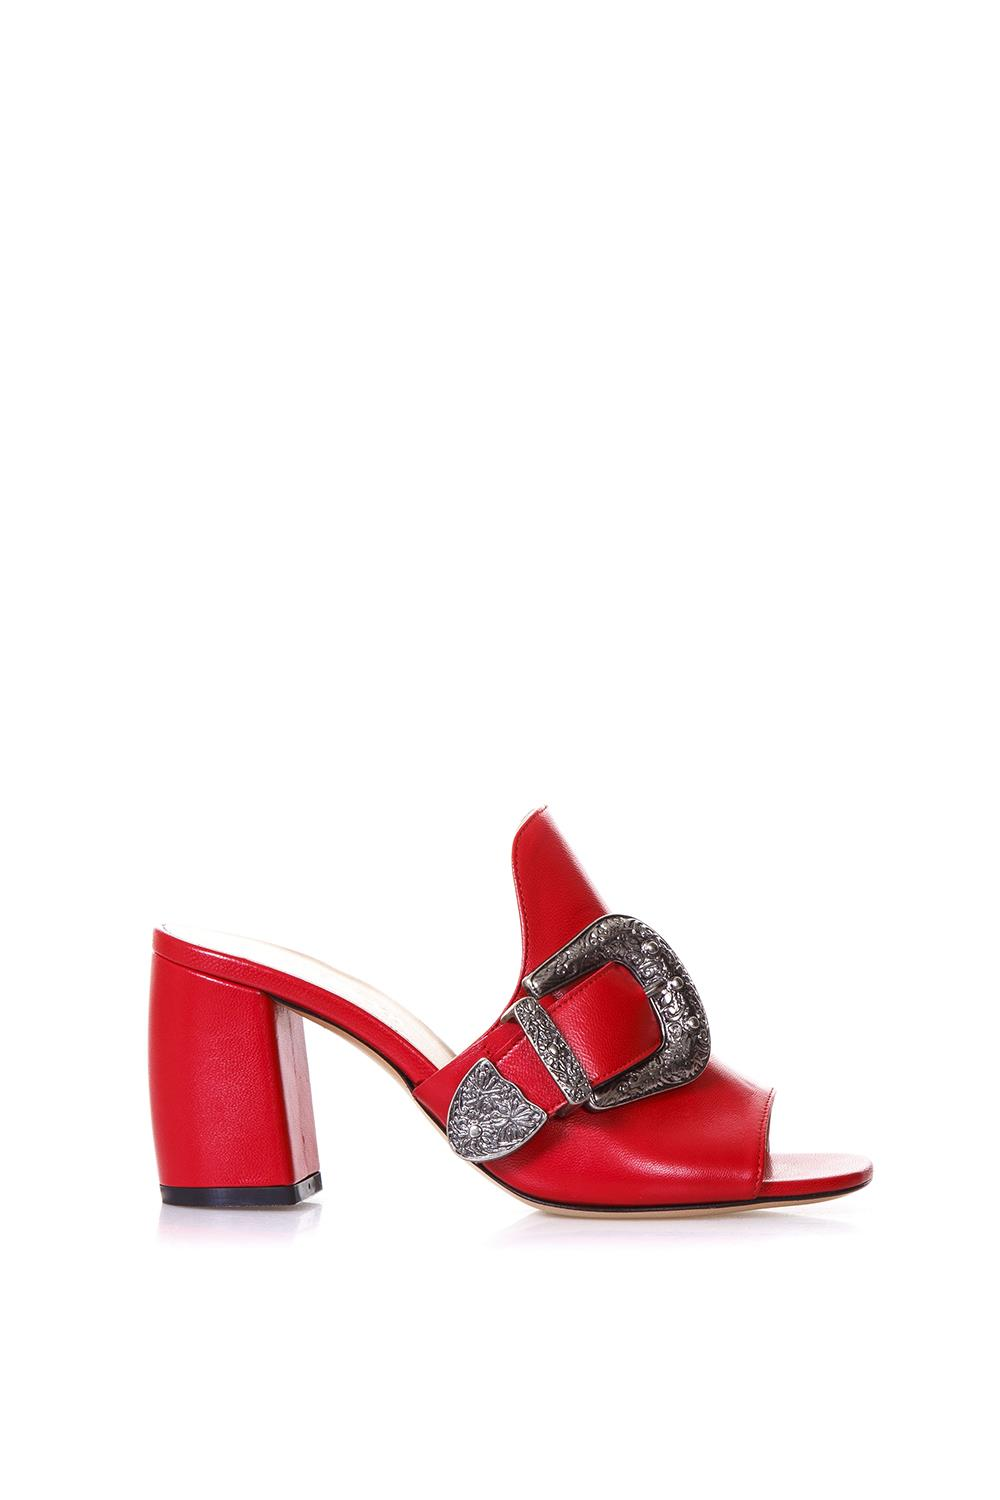 Red Leather Ss Good Sandals With Stephen 2018 Metal Buckle 80mm fdwSqf